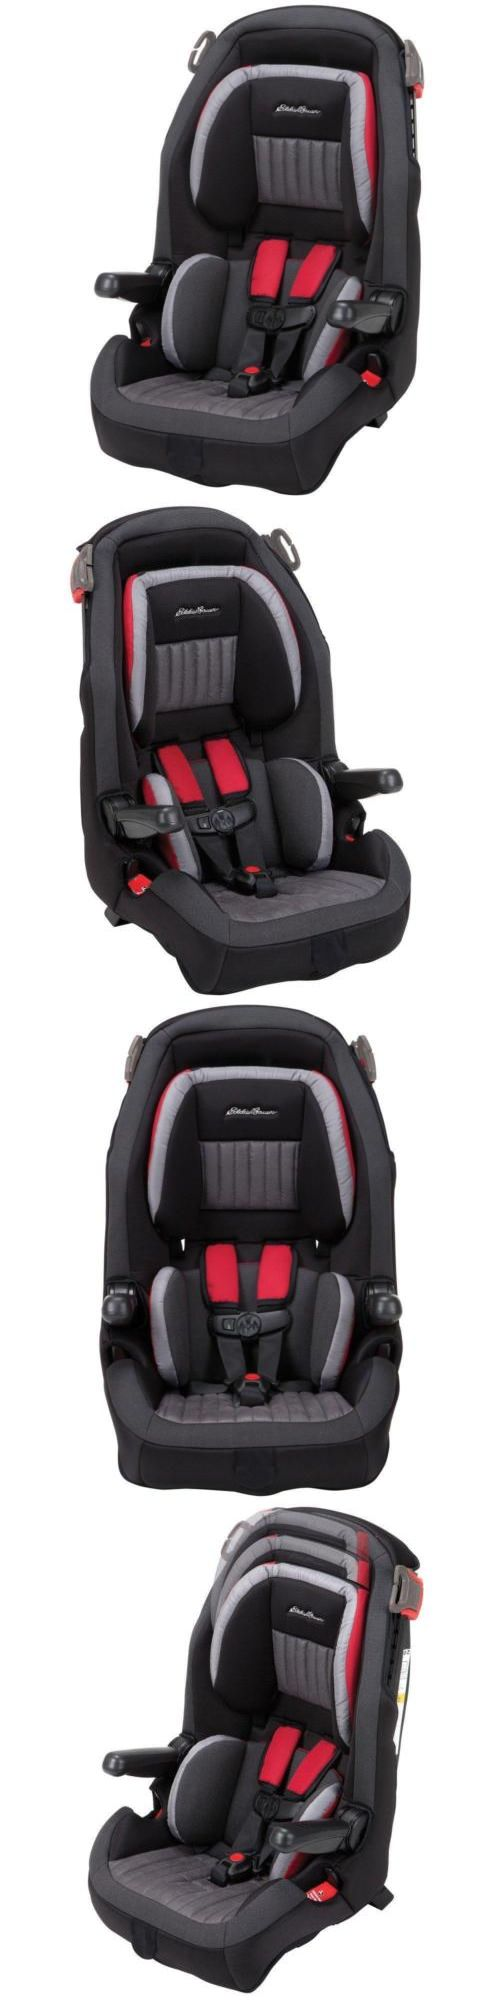 Other Car Safety Seats 2987 Eddie Bauer Combination Booster Seat Salsa Red BUY IT NOW ONLY 9403 On EBay